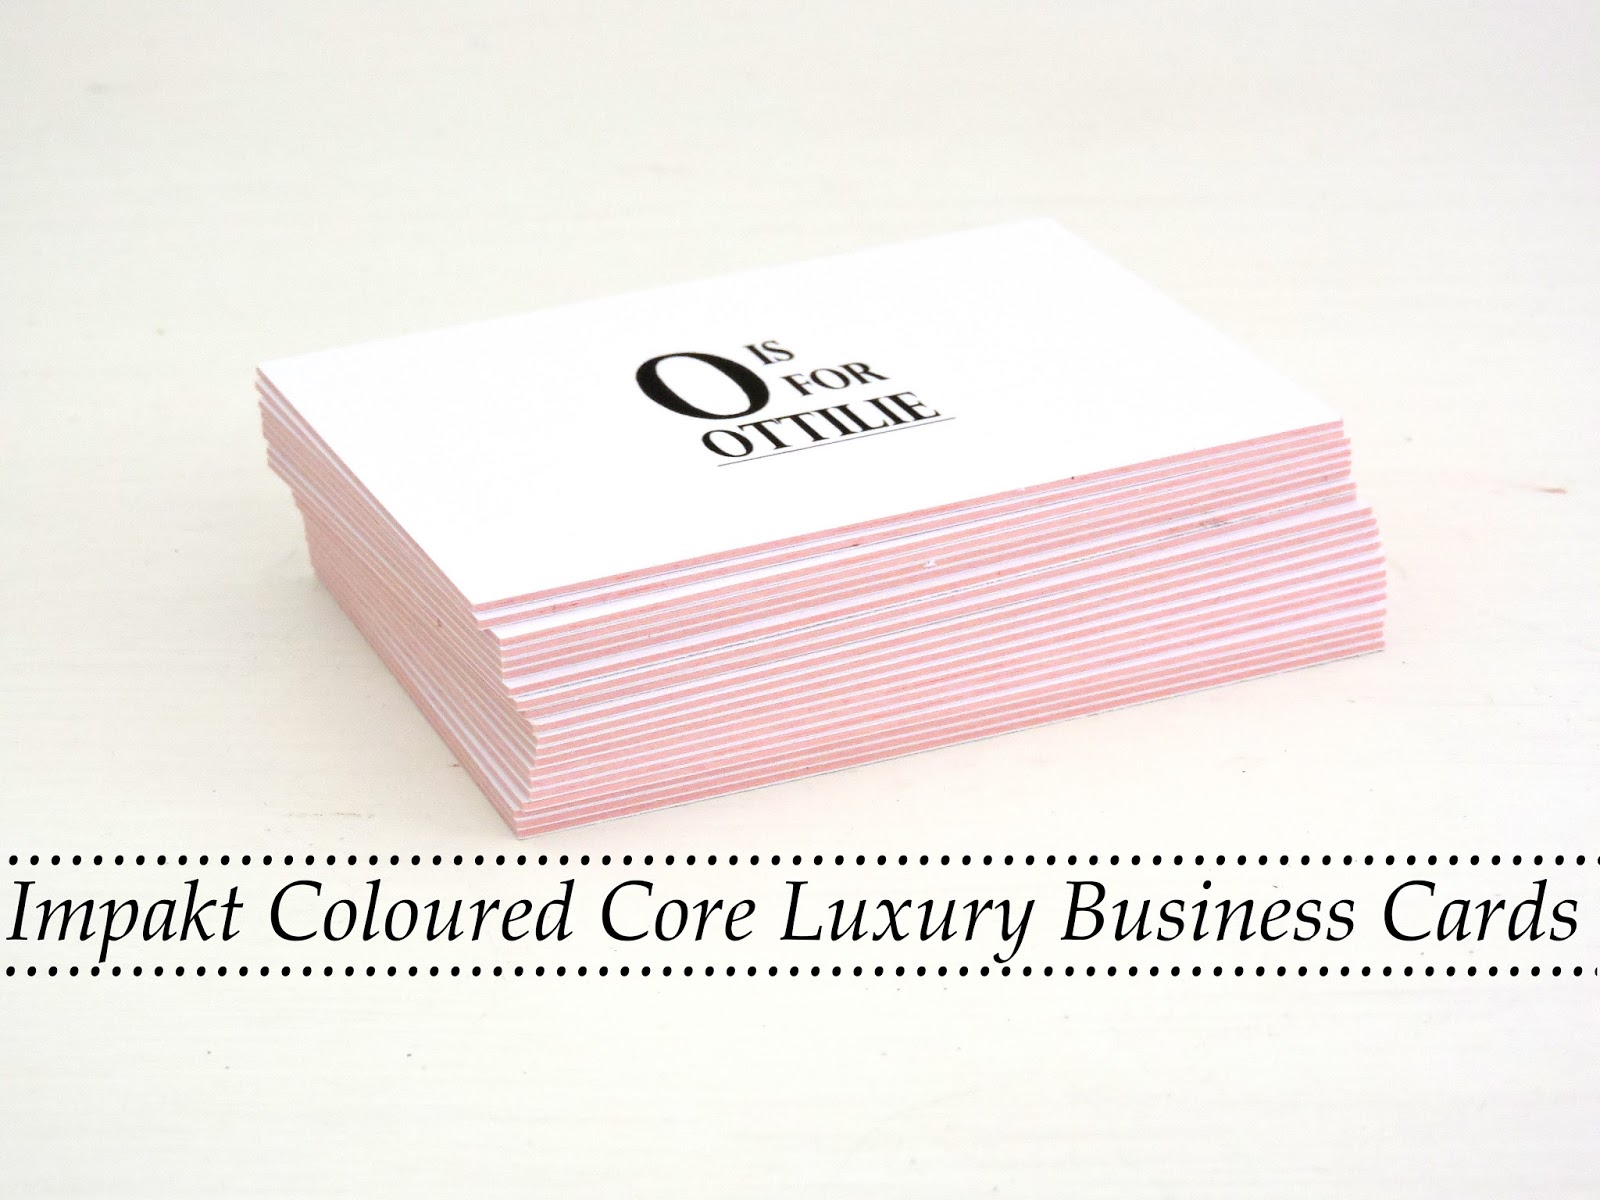 Luxury coloured core business cards o is for ottilie aura print have designed these coloured core business cards the perfect classy minimal way to get yourself noticed reheart Image collections